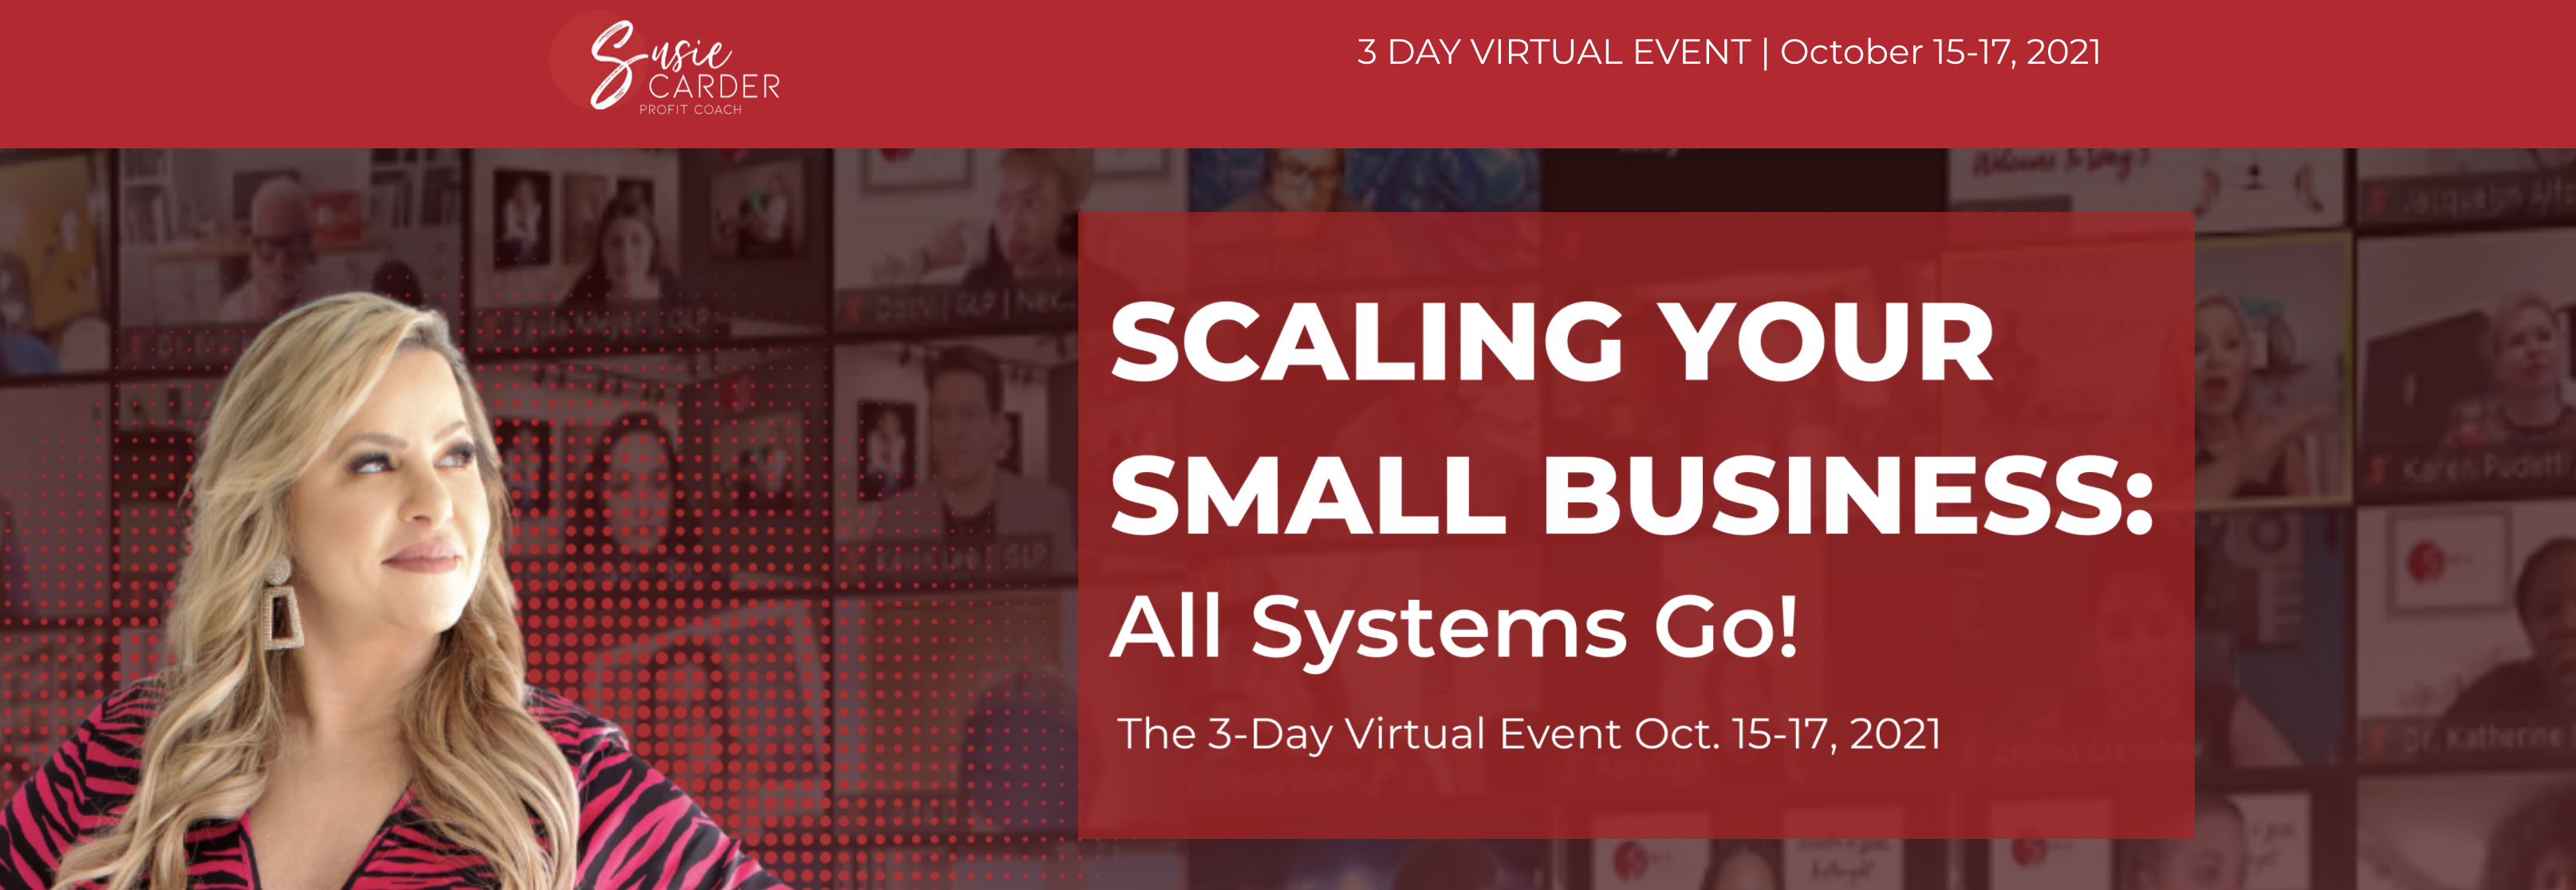 Scaling Your Small Business: All Systems Go! Event 2021-09-17 16-26-17